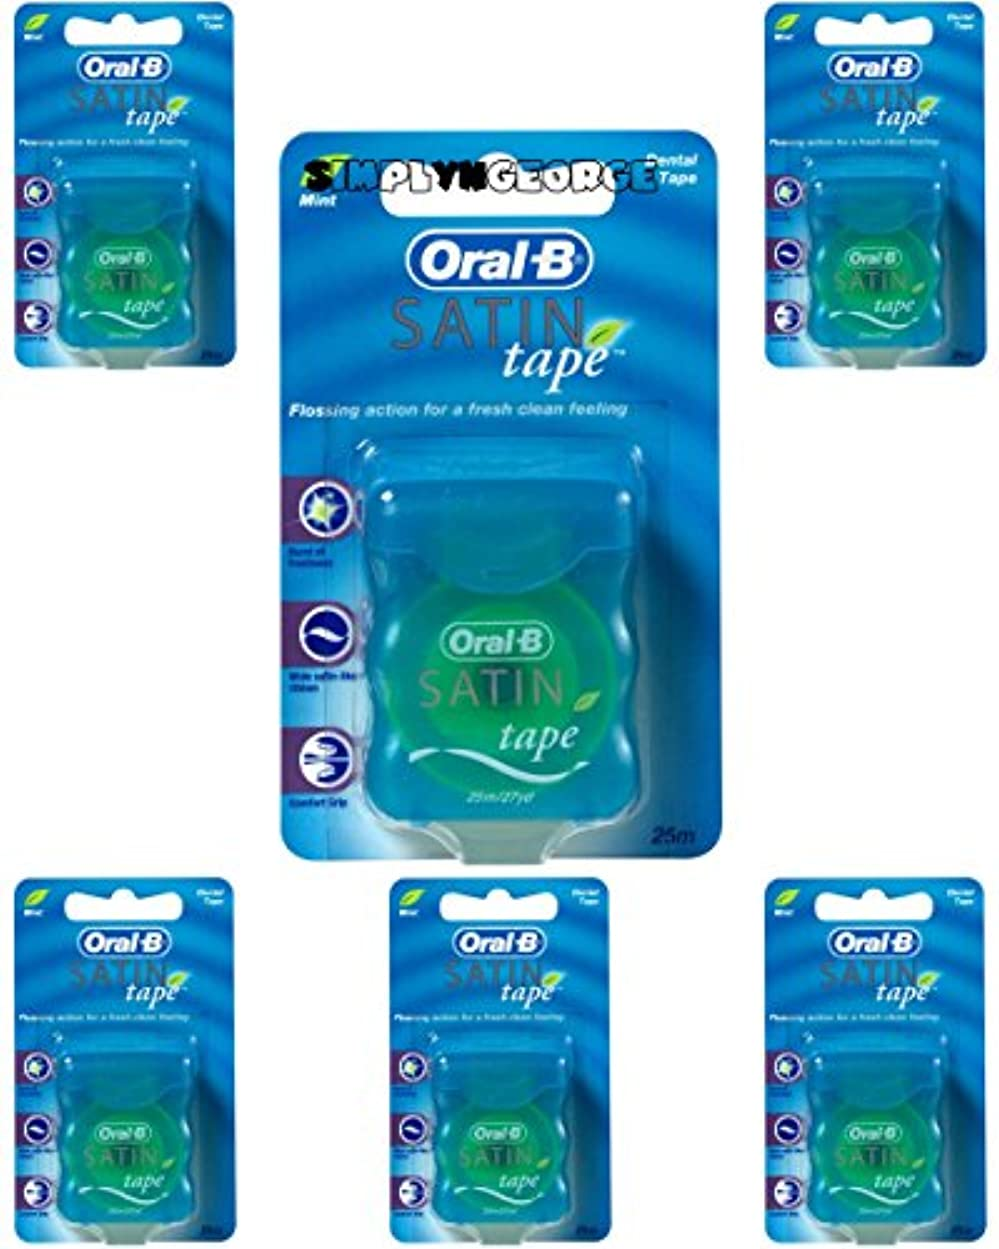 決定する傷つける配管Oral-B Statin Tape Dental Floss 25m (6 Units) by Oral-B Satin Tape Mint